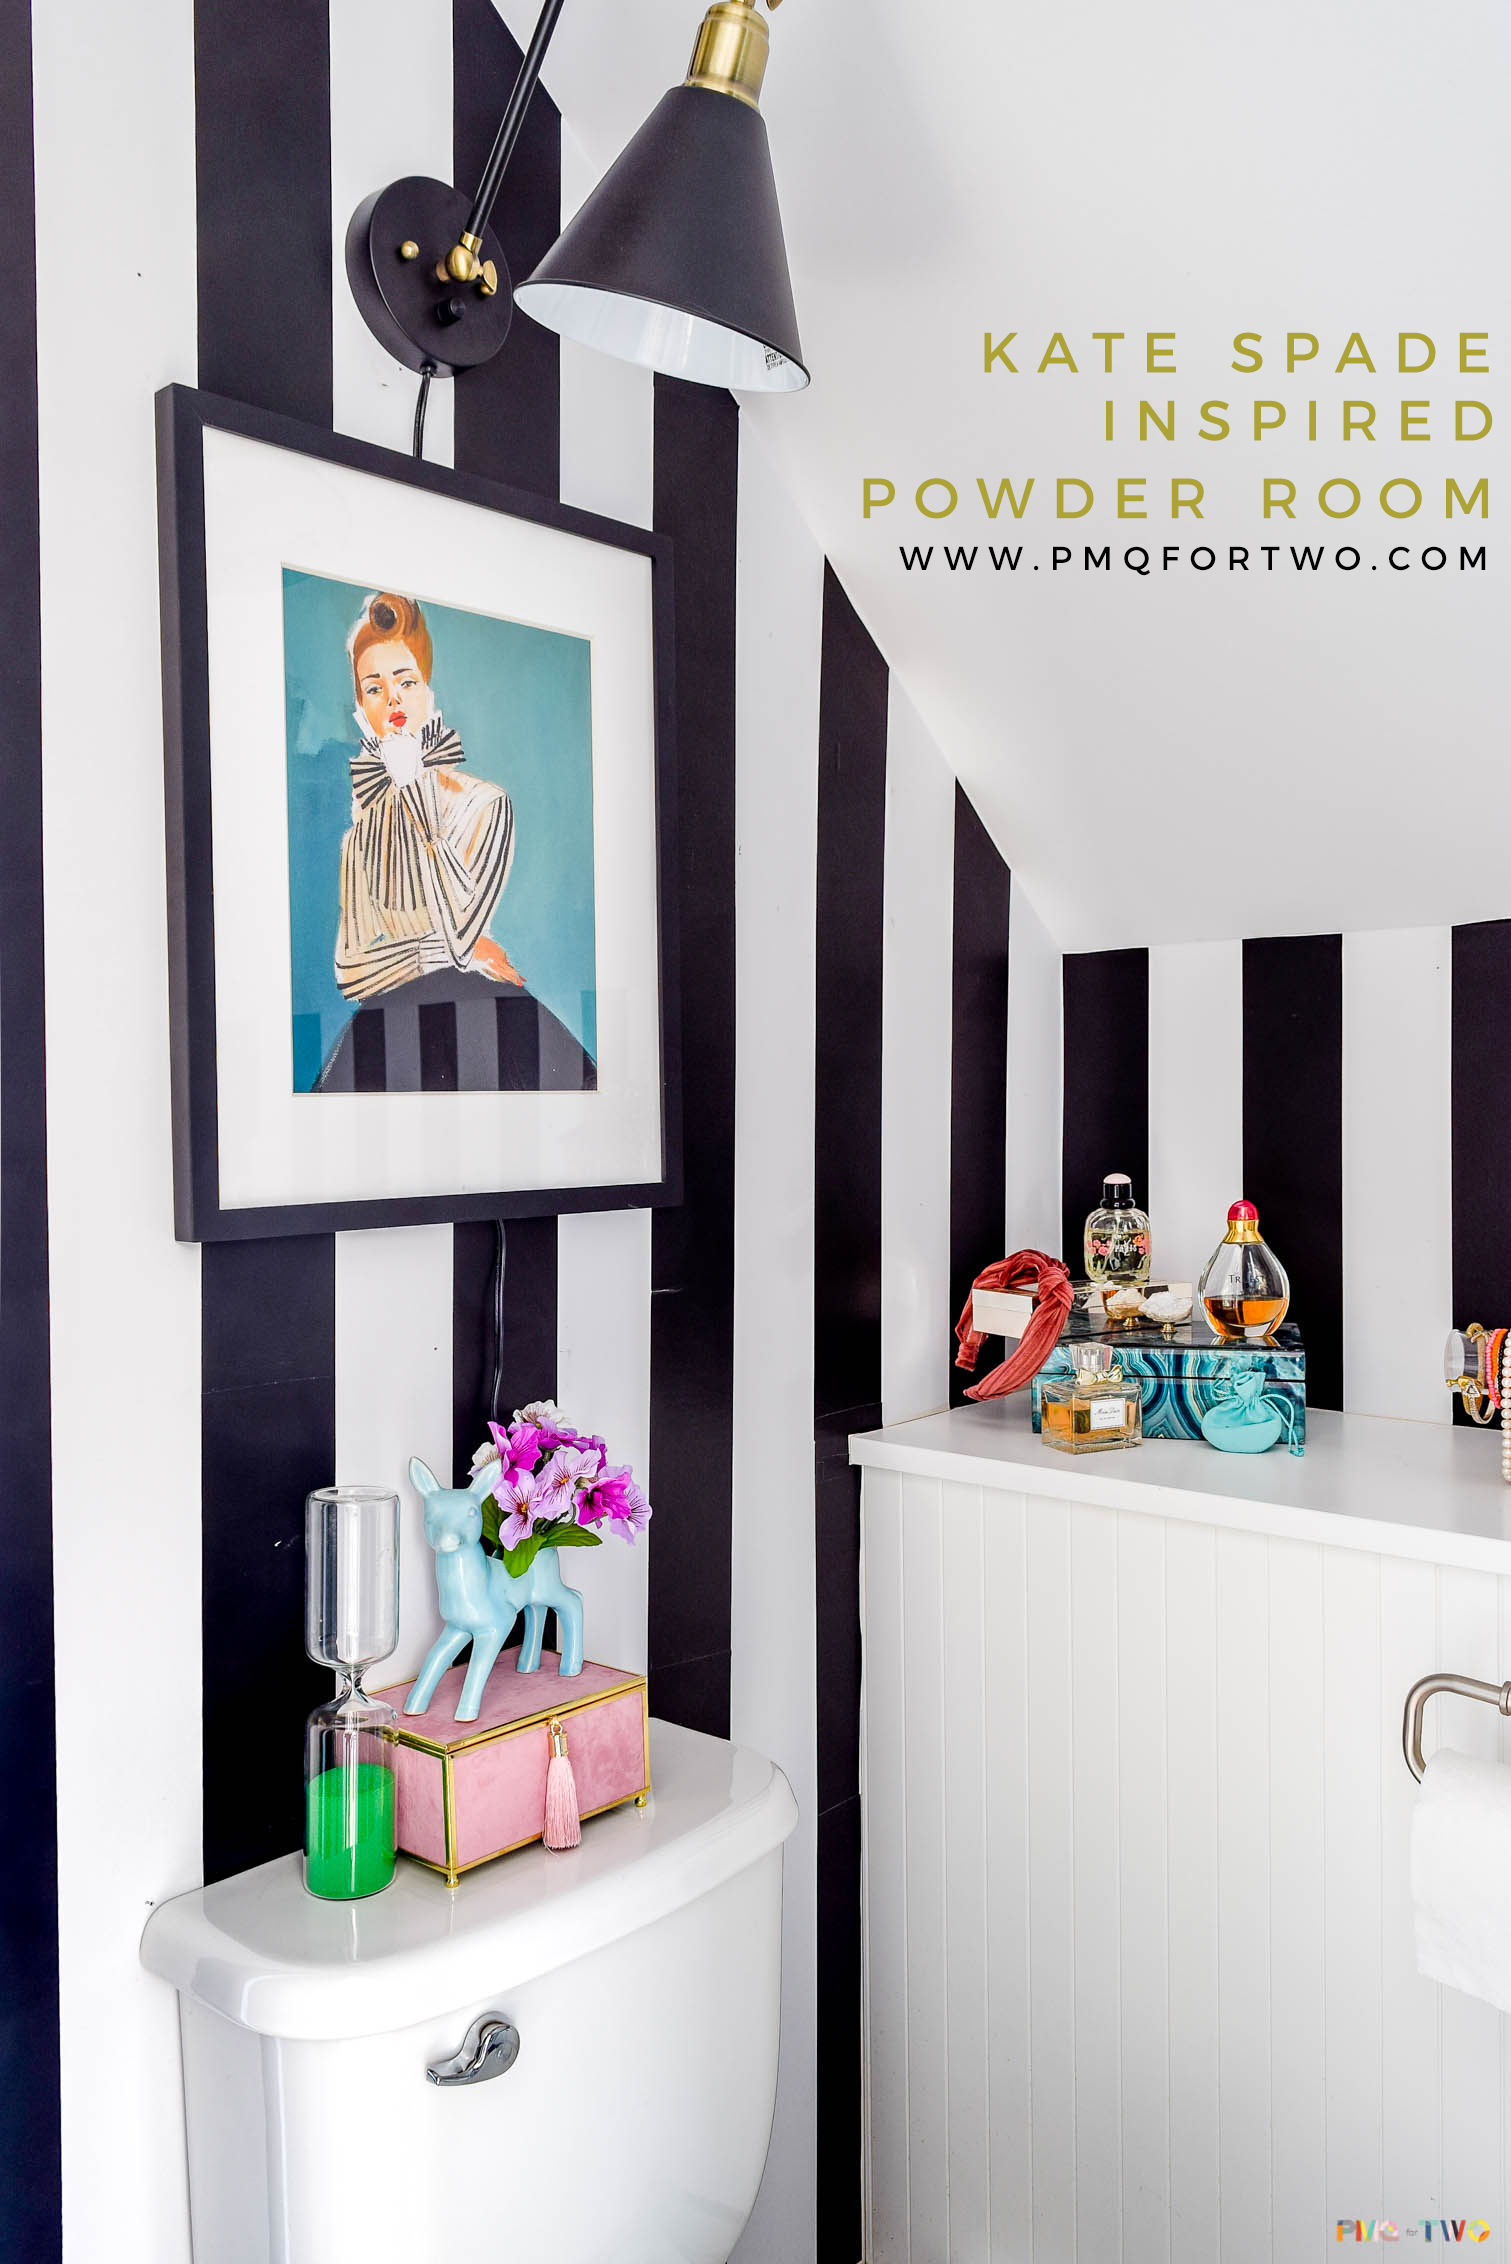 Bring A Little Razzle Dazzle To Your Bathroom With This Kate Spade Inspired  Powder Room Makevoer